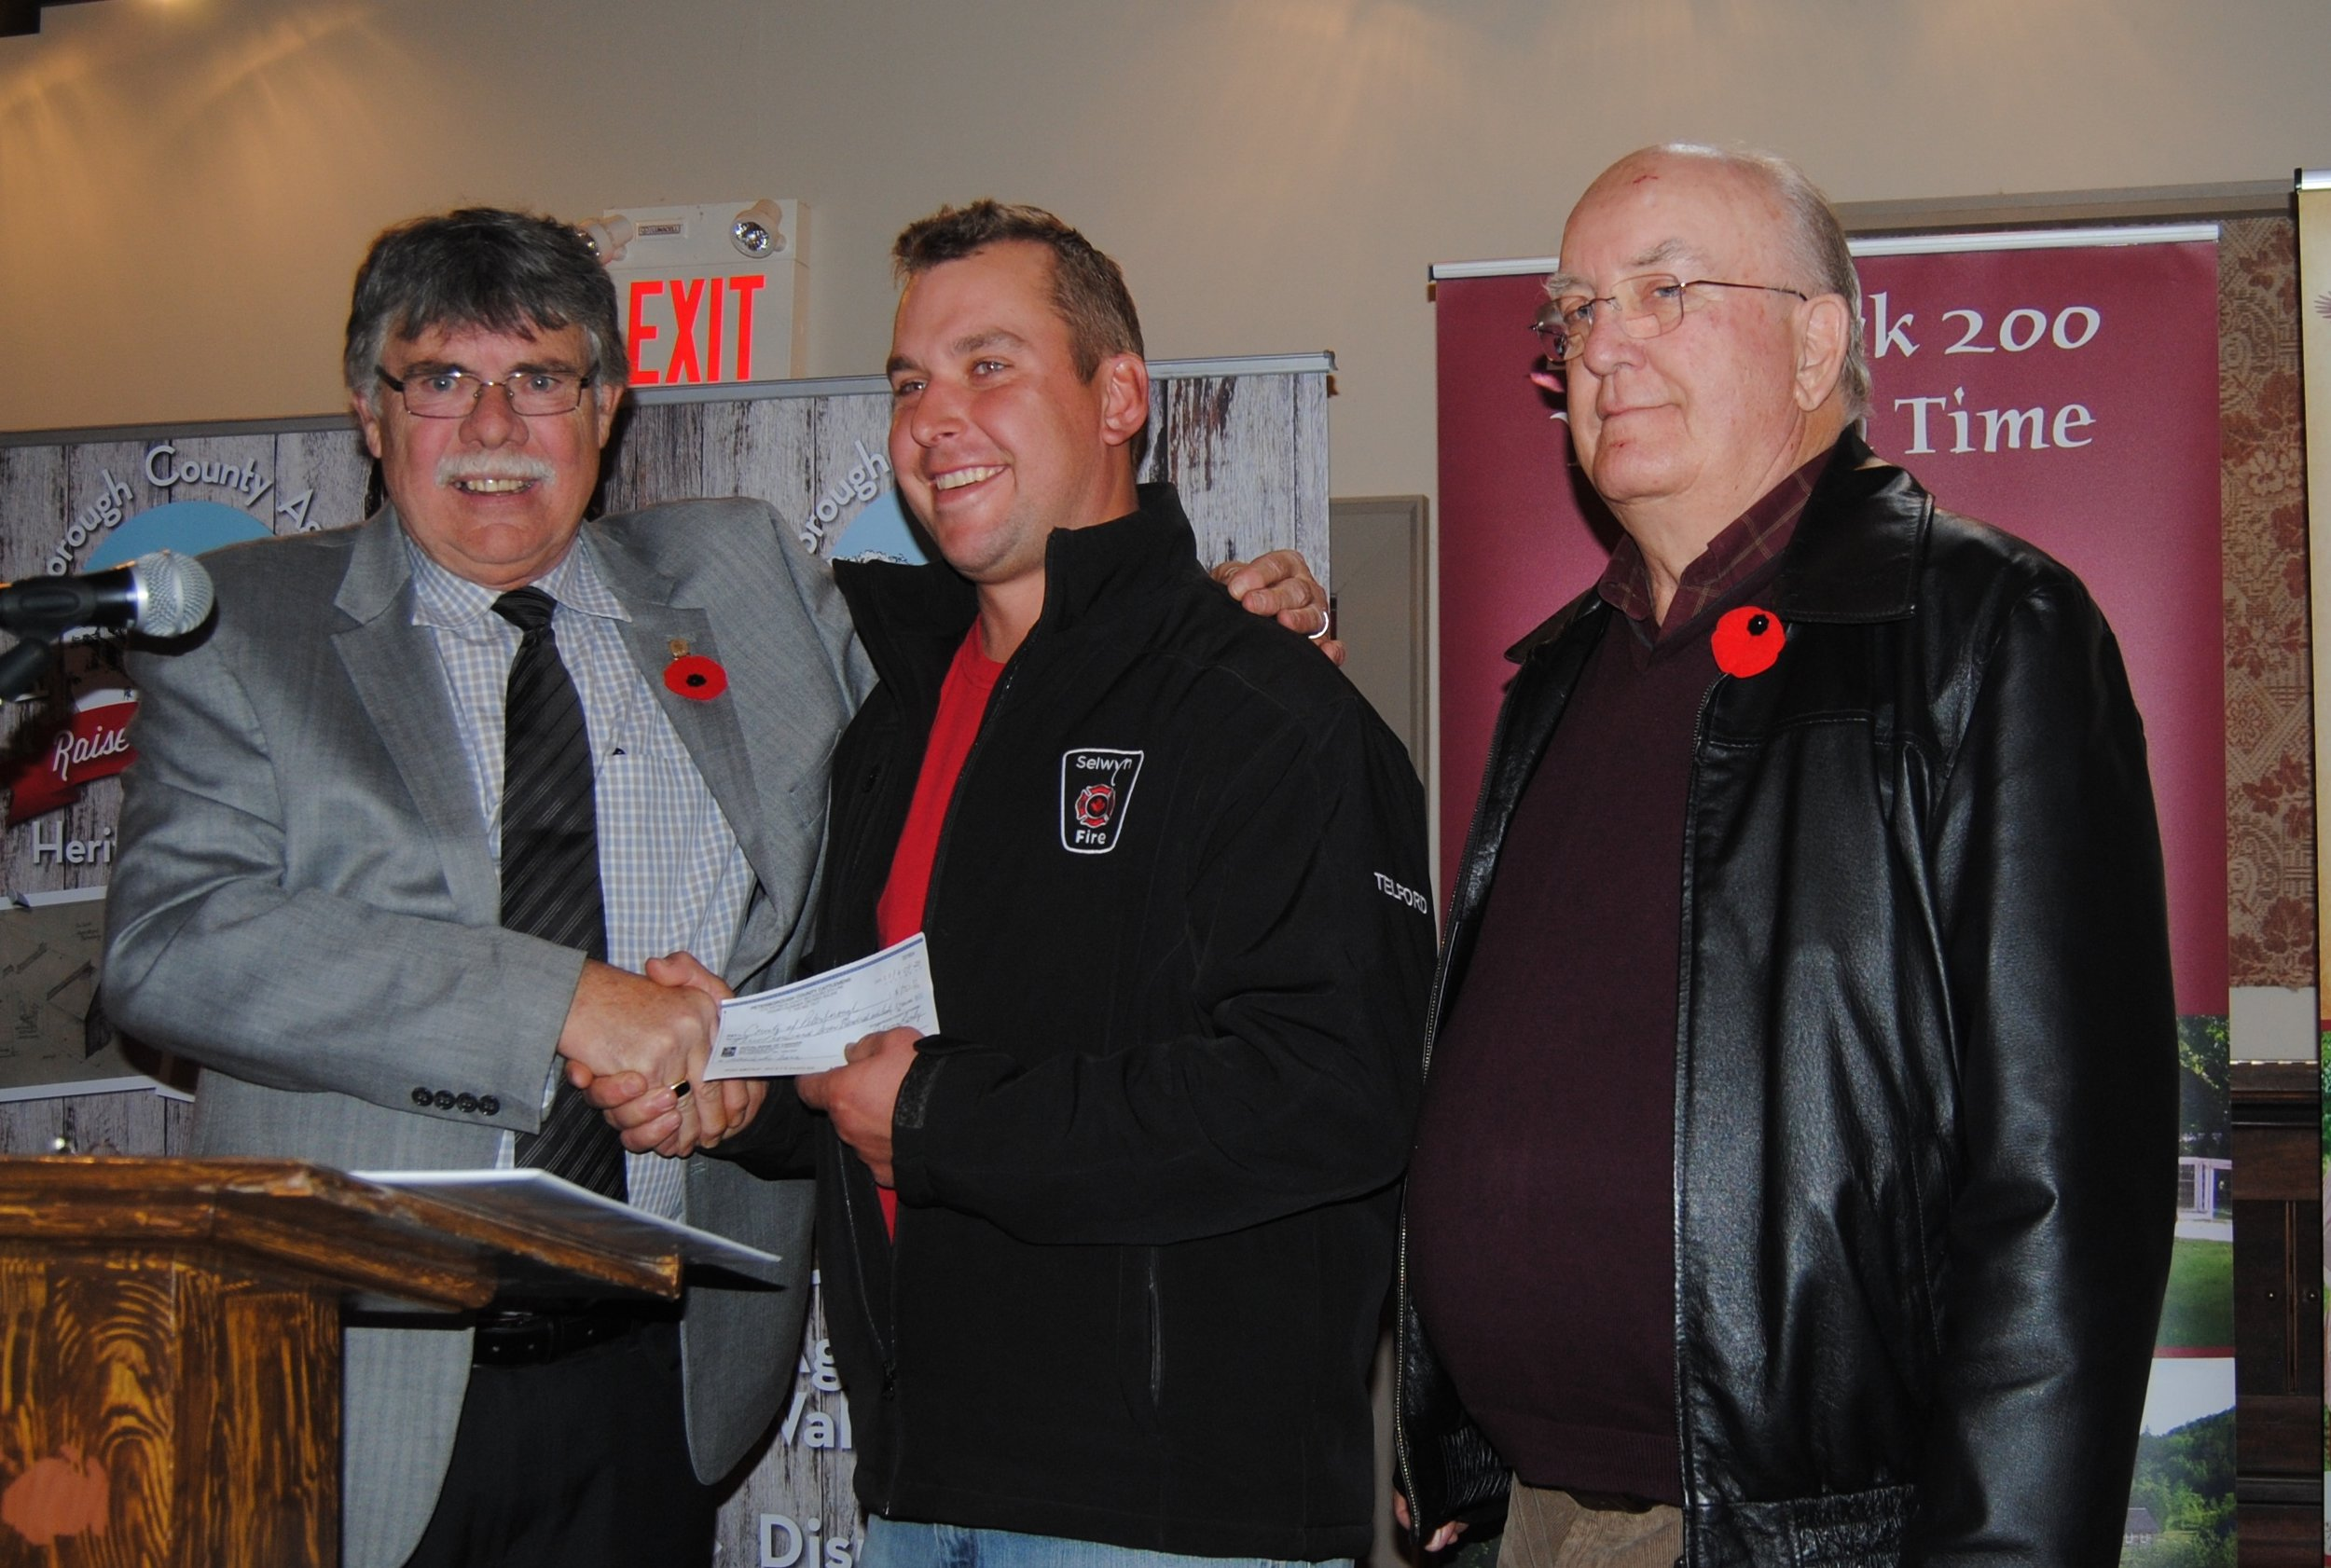 Cheque presentation of $3760 for the Peterborough County Agricultural Raising the Barn: Heritage Building.  Left to right:  Peterborough County Warden, J. Murray Jones; Mike Telford, Cattlemen's BBQ Fundraising Chair; and Larry Jinkerson, Peterborough County Cattlemen President